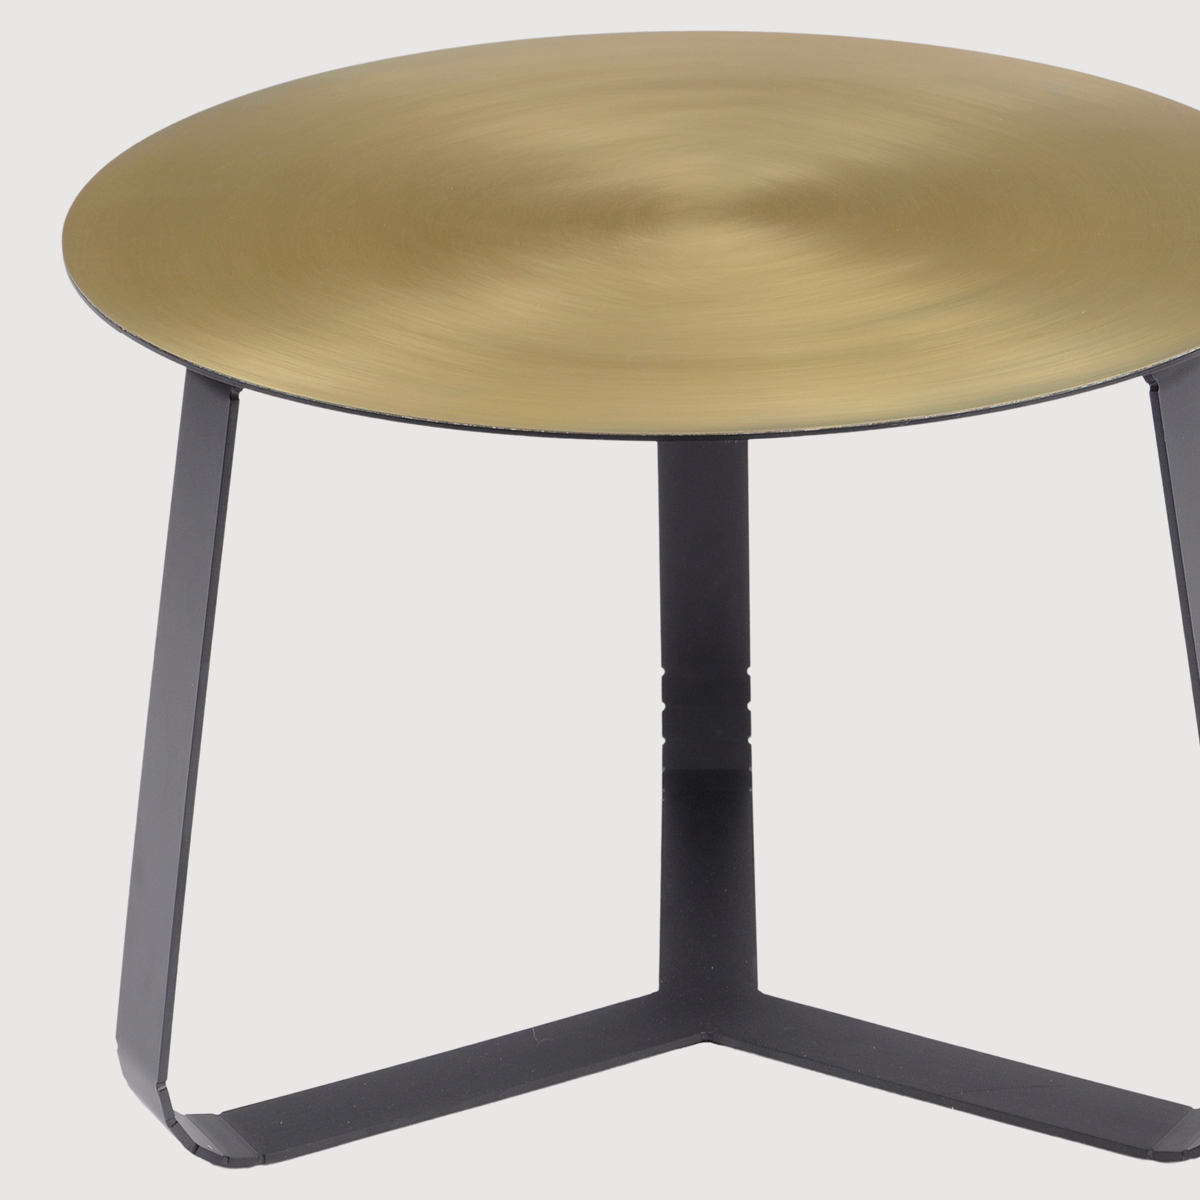 Bloomsbury Brass Coffee Table – Small gallery image